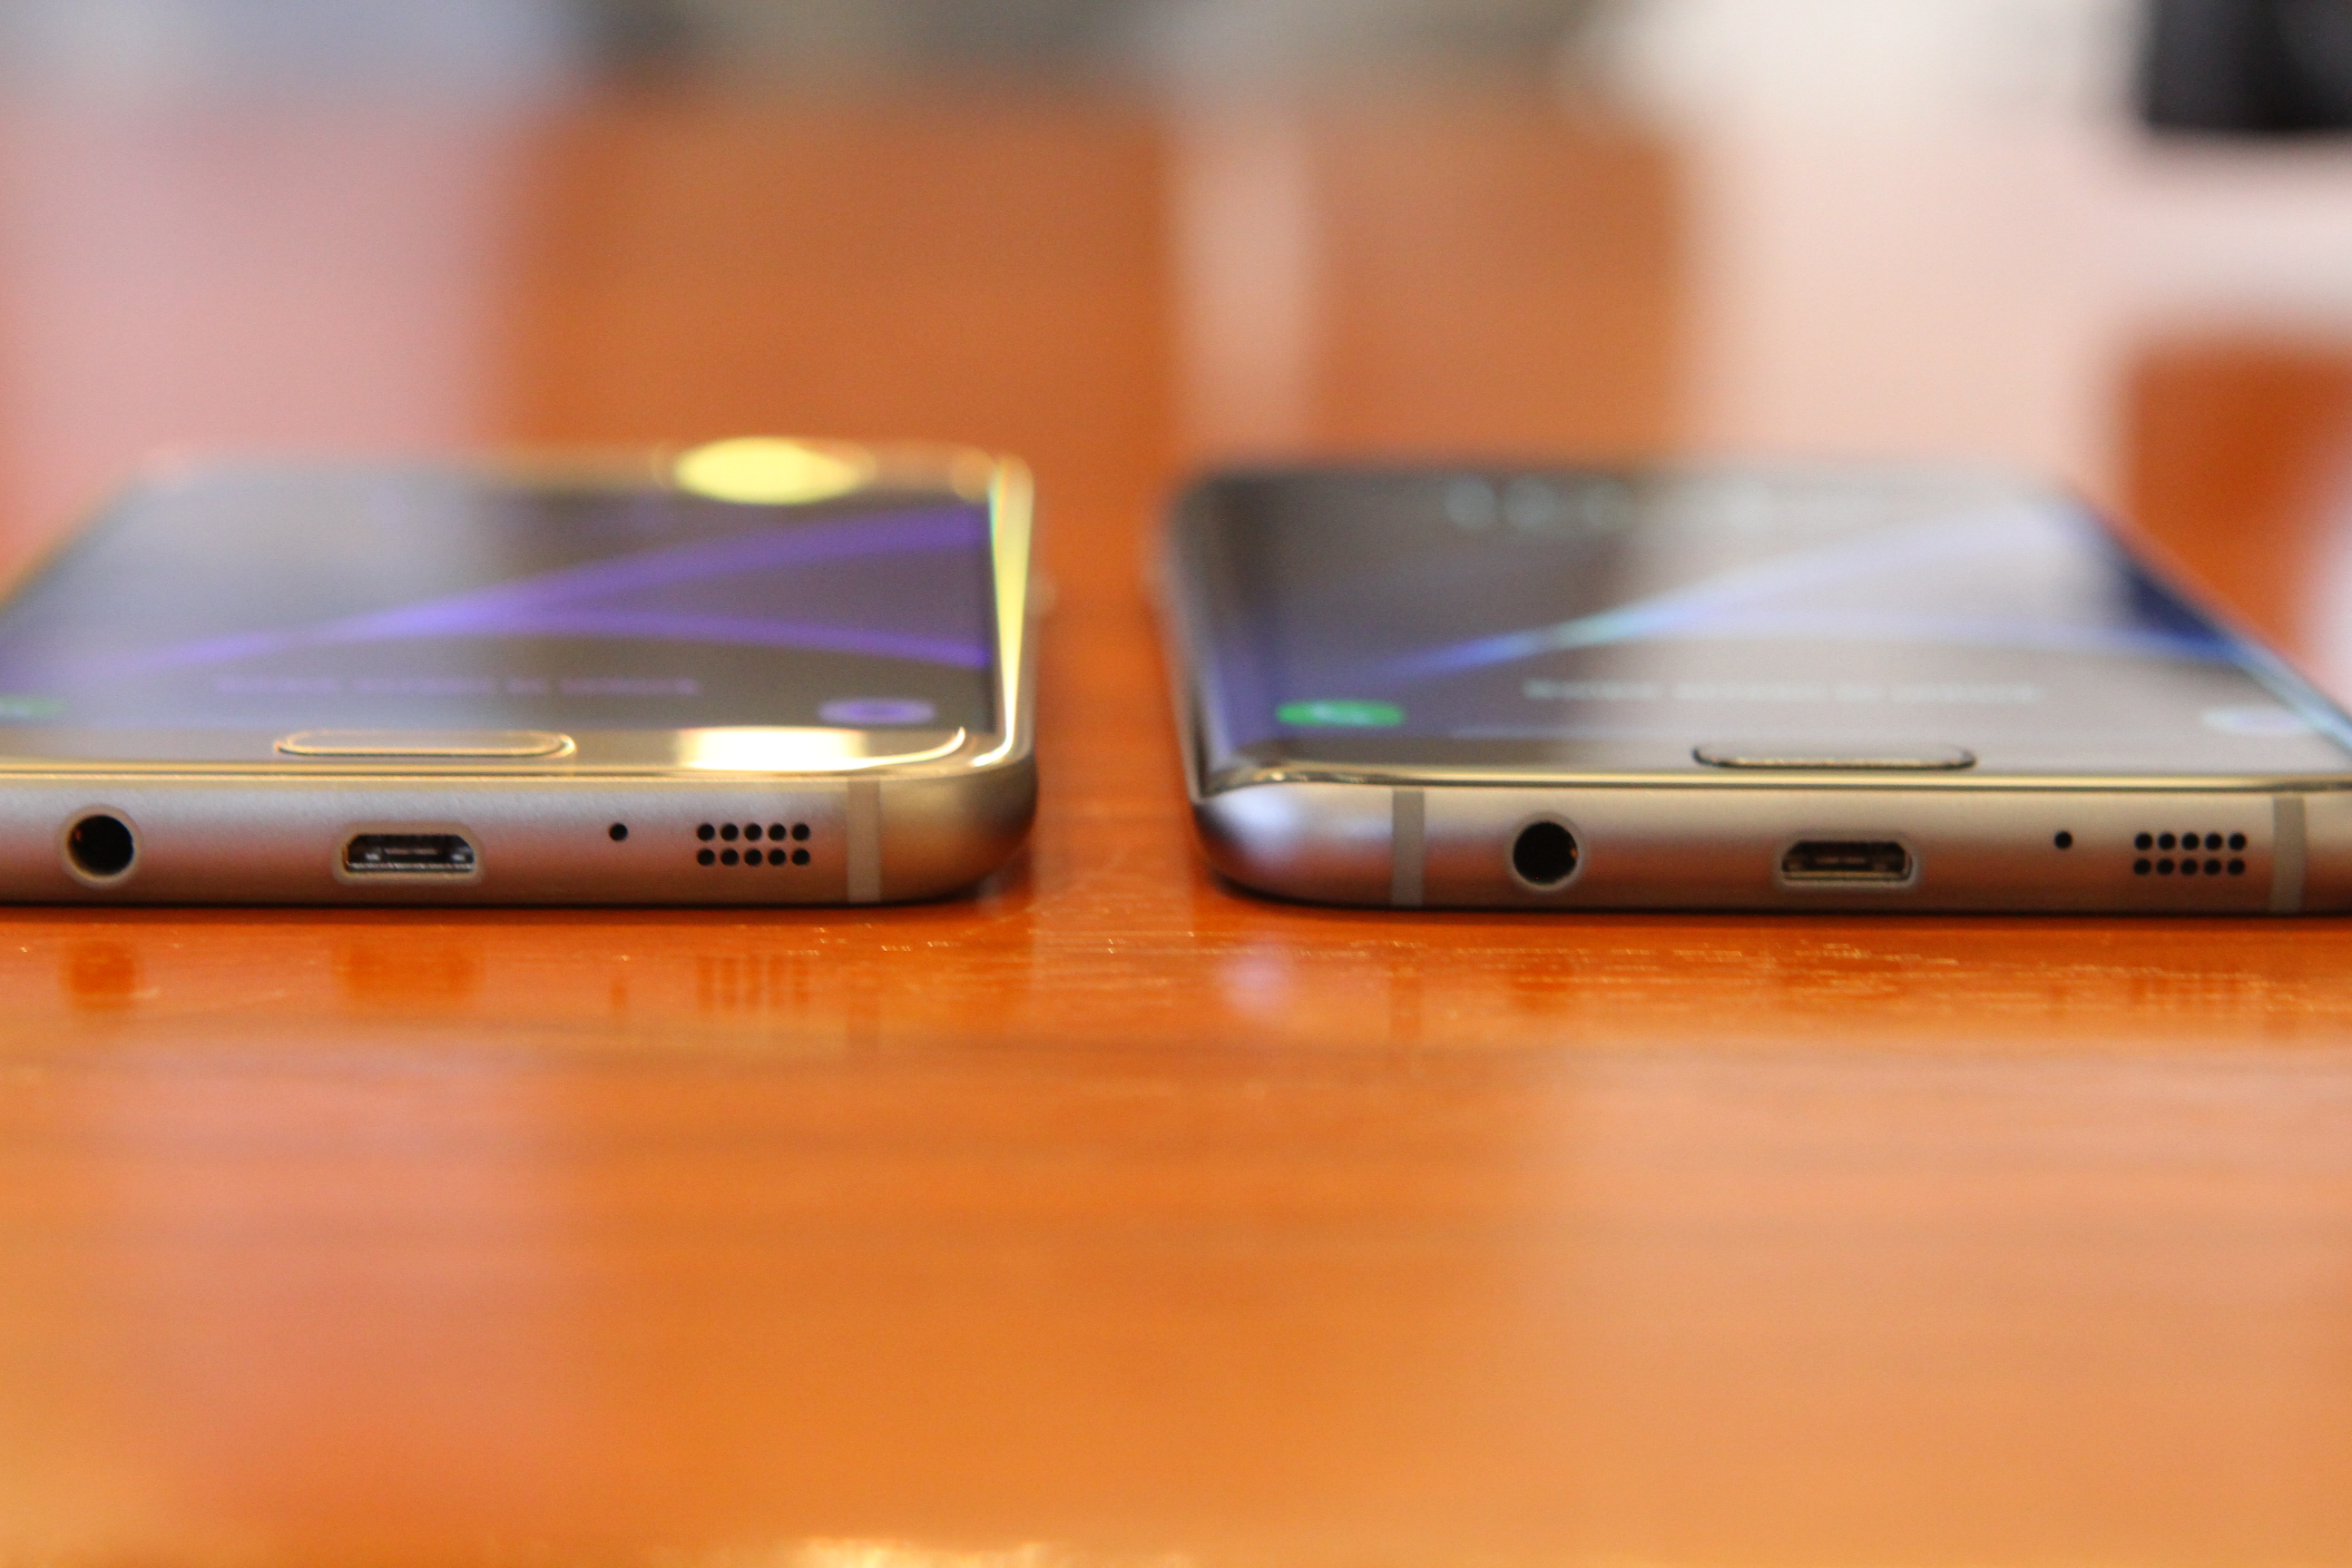 Image of Samsung's newest Galaxy S7 and S7 edge smartphones.